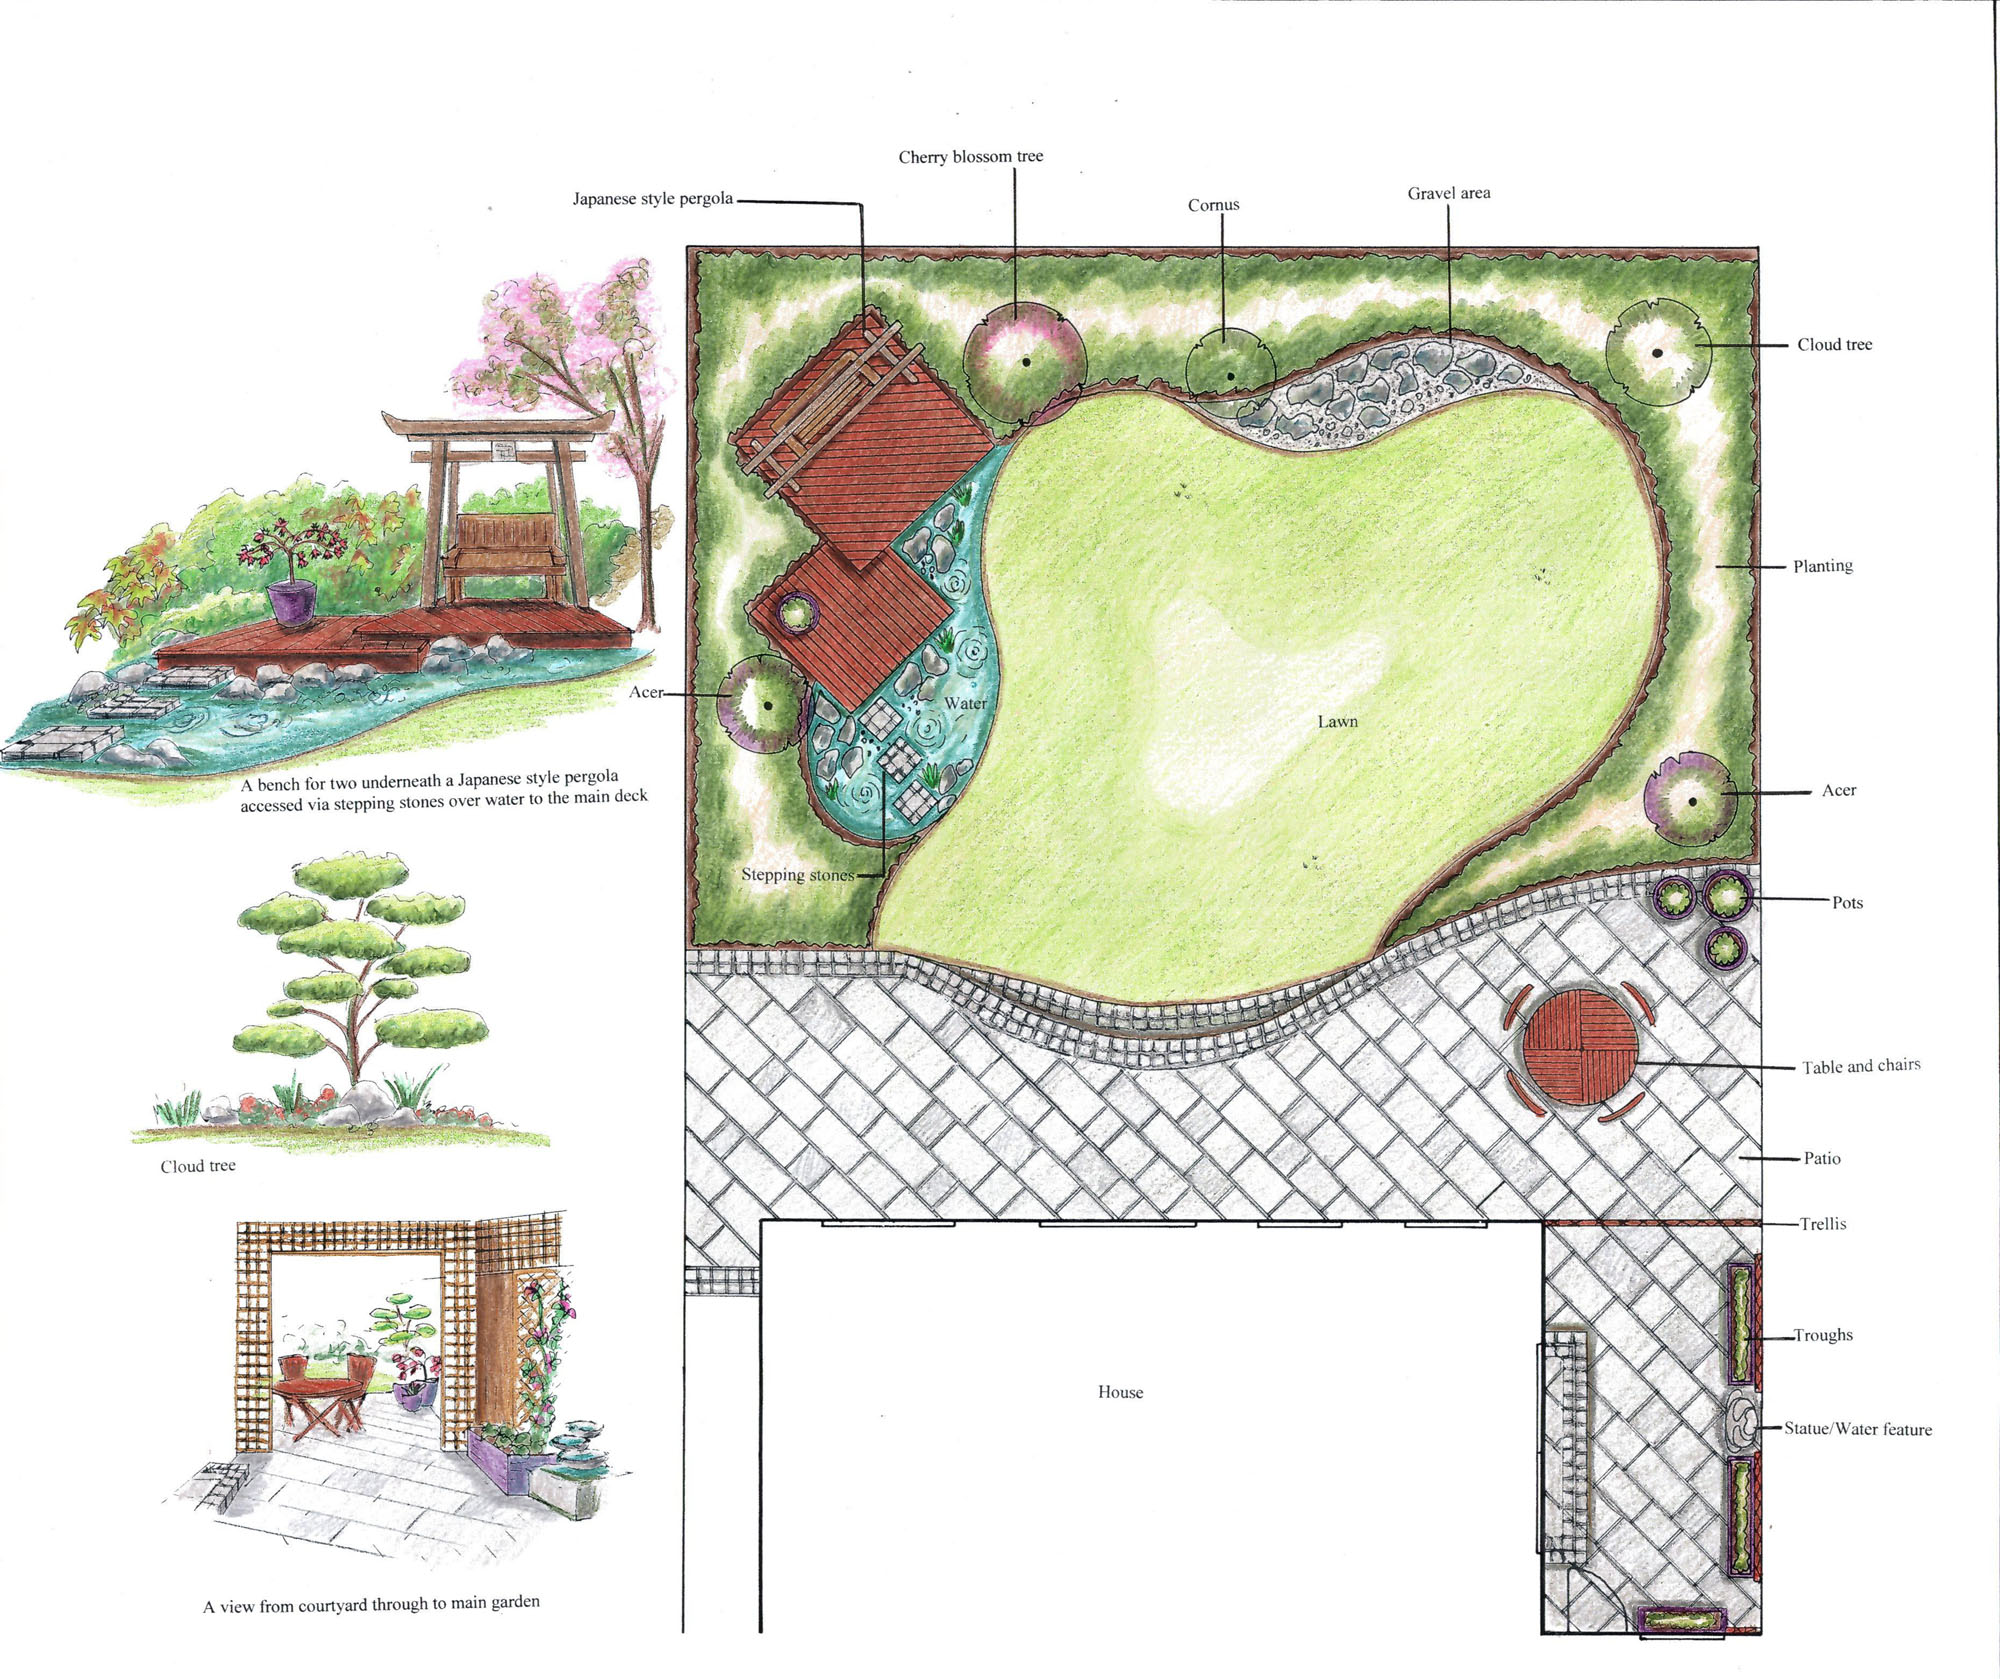 Joanna cowan garden design for Small garden layouts designs